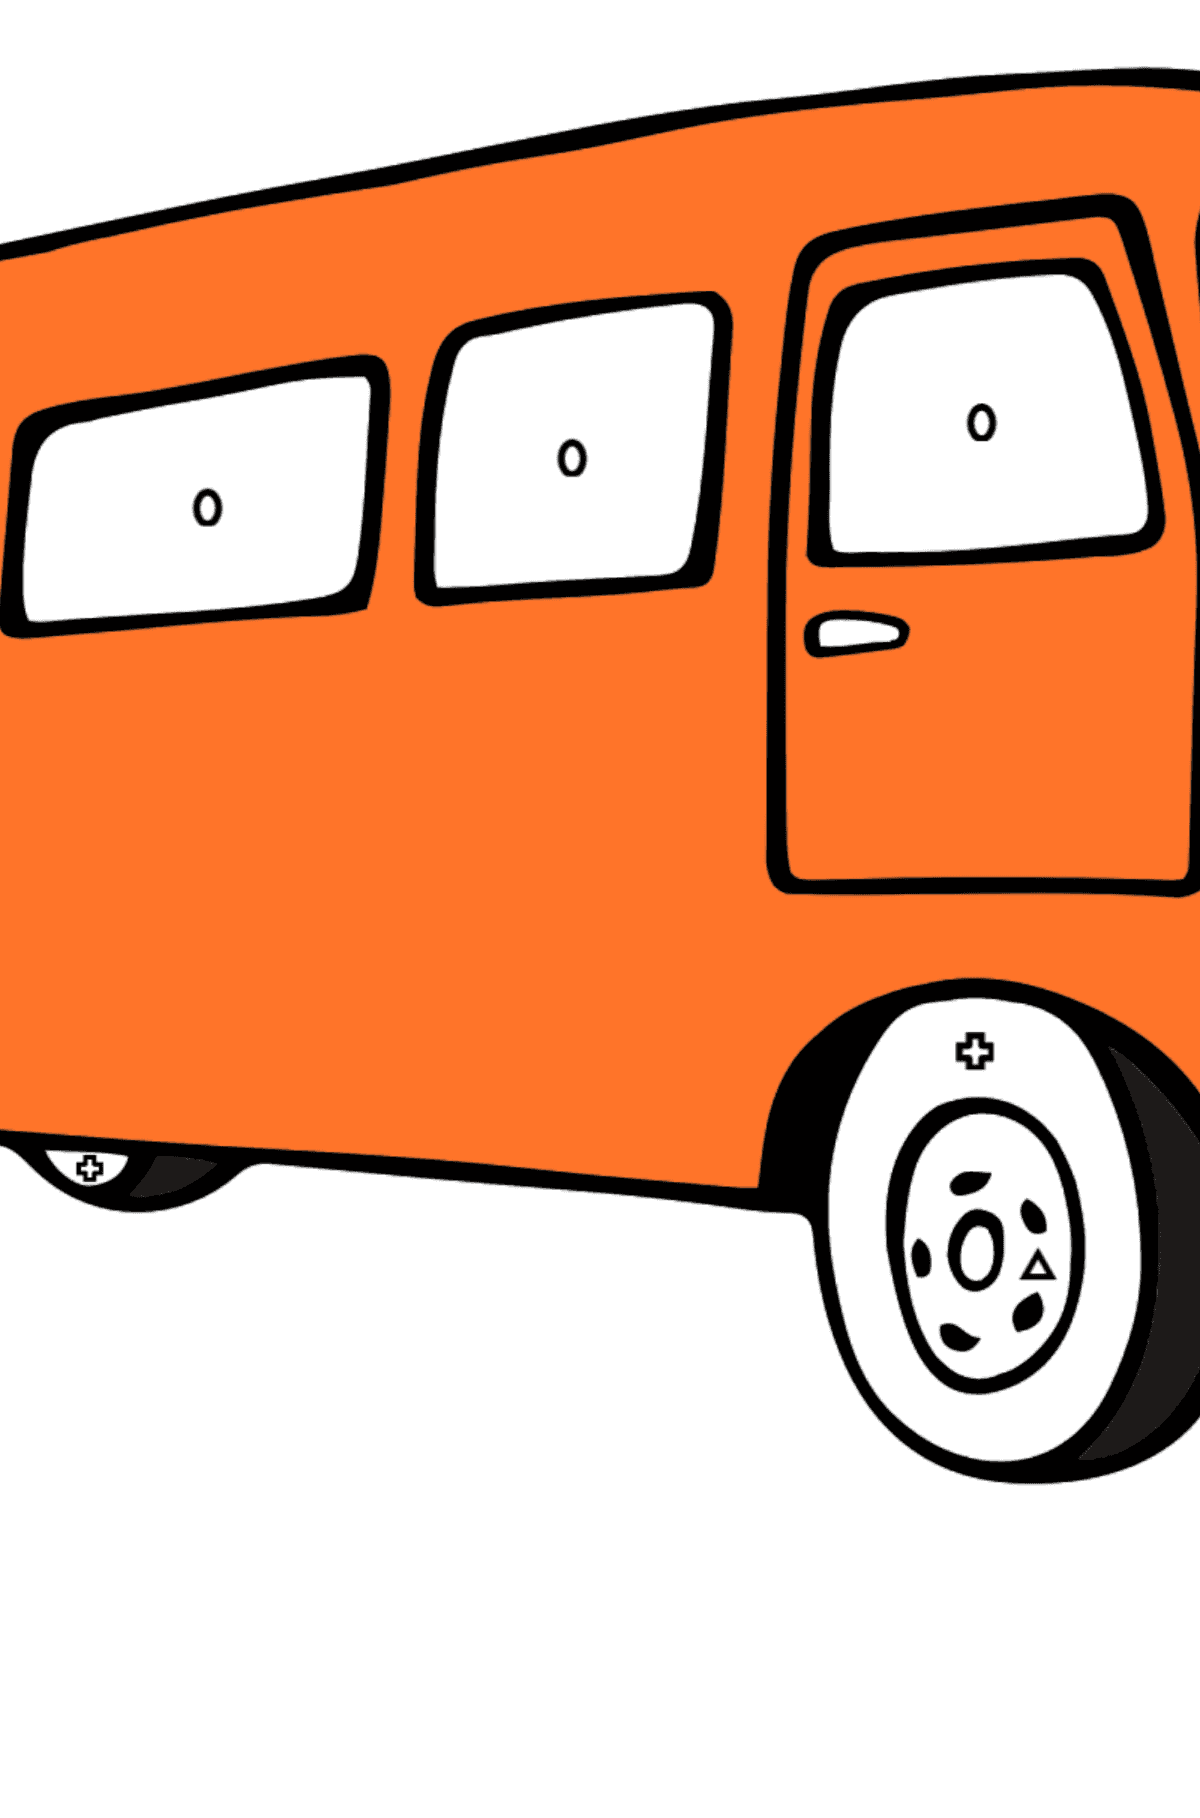 Coloring Page - A Traveling Bus - Coloring by Geometric Shapes for Kids